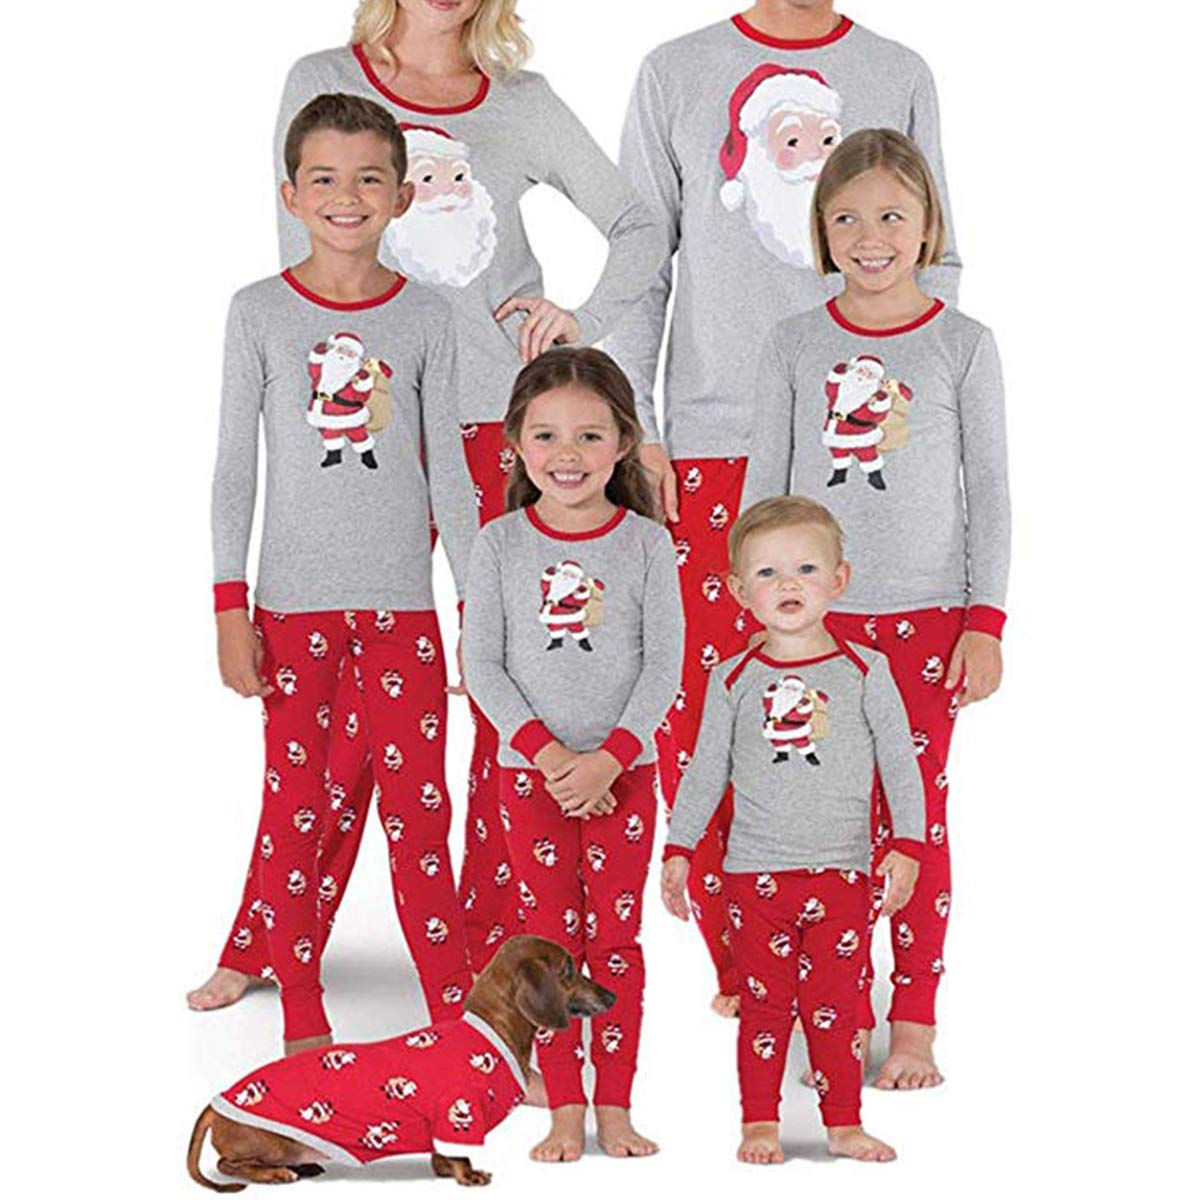 Yeawooh Family Matching Pajamas Sets, Christmas Sets Tops Trousers Santa Claus Print